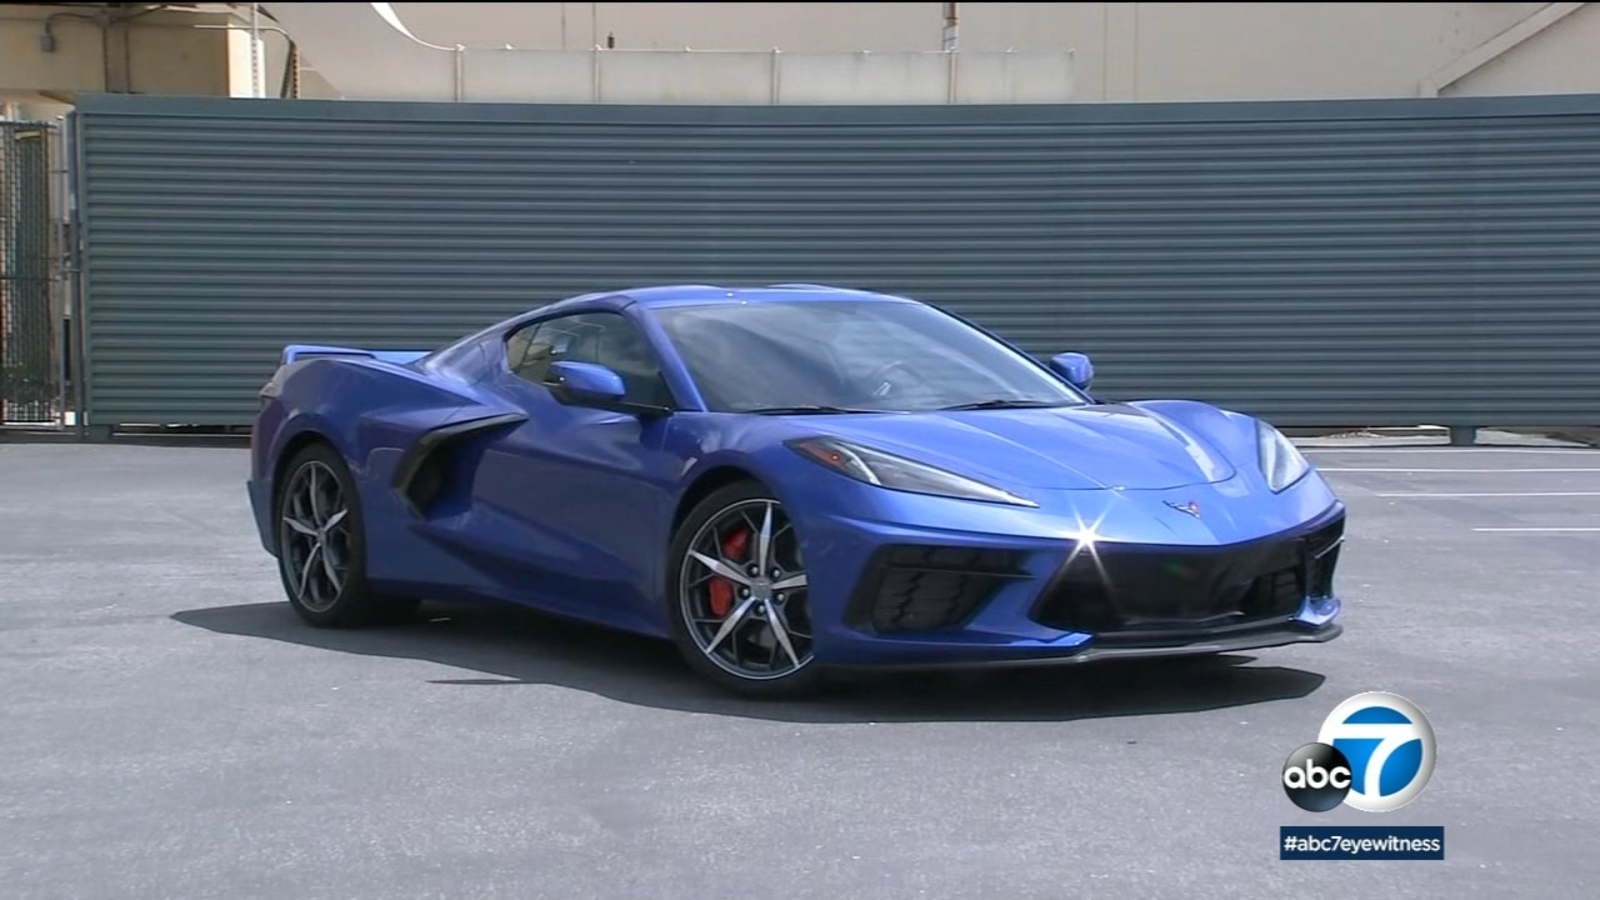 New Corvette 2020: New Corvette back in production after delays from United  Auto Workers strike, then COVID-19 shutdown - ABC7 Los Angeles